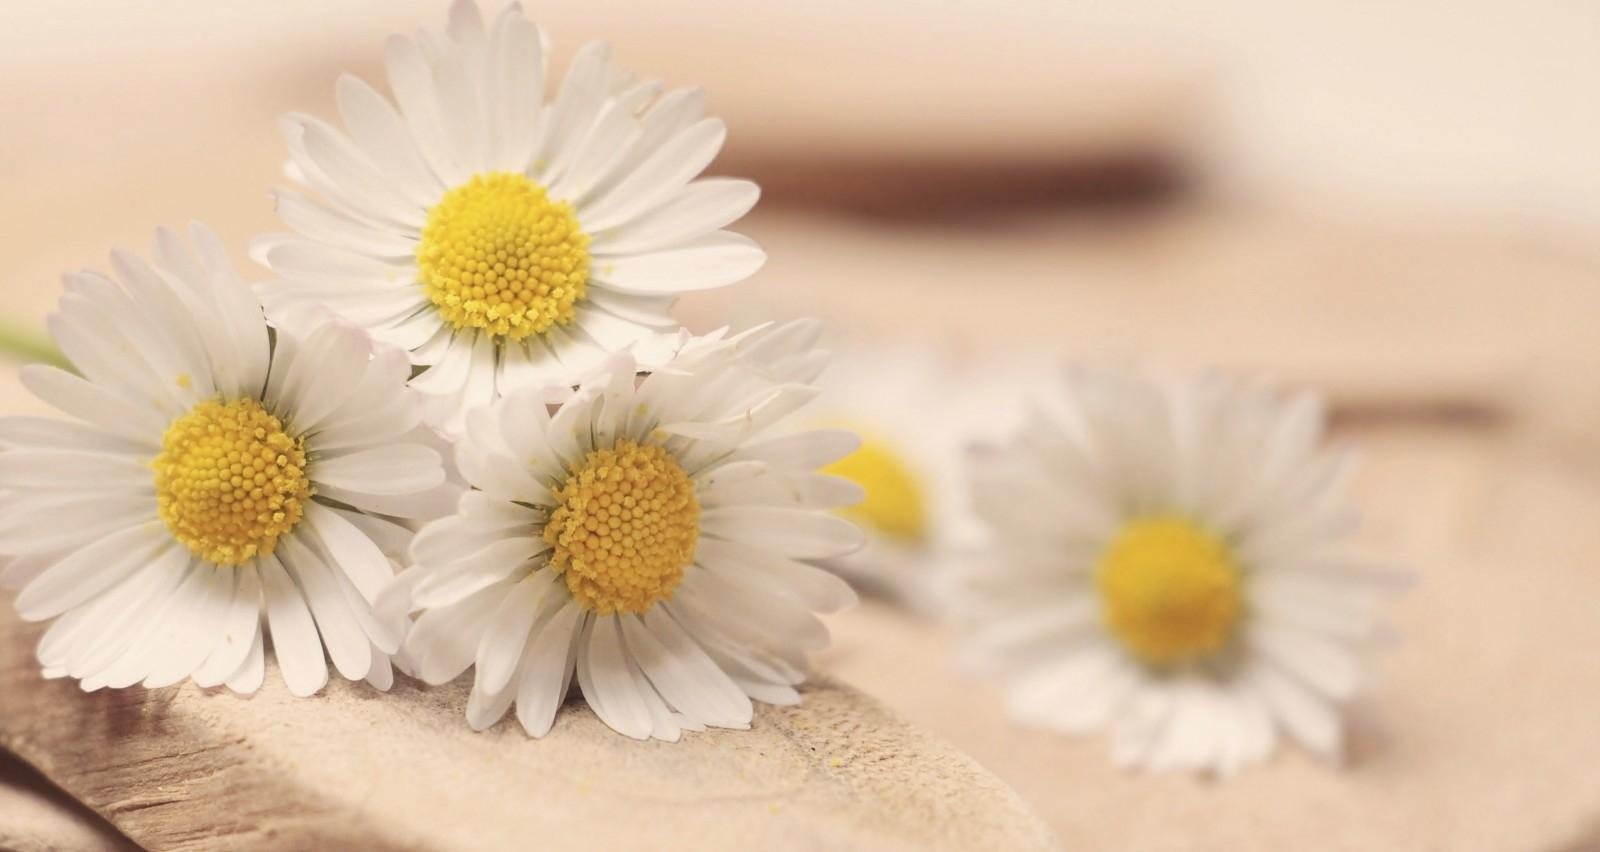 Chamomile does feature in one of the world's biggest brands - Hendrick's.